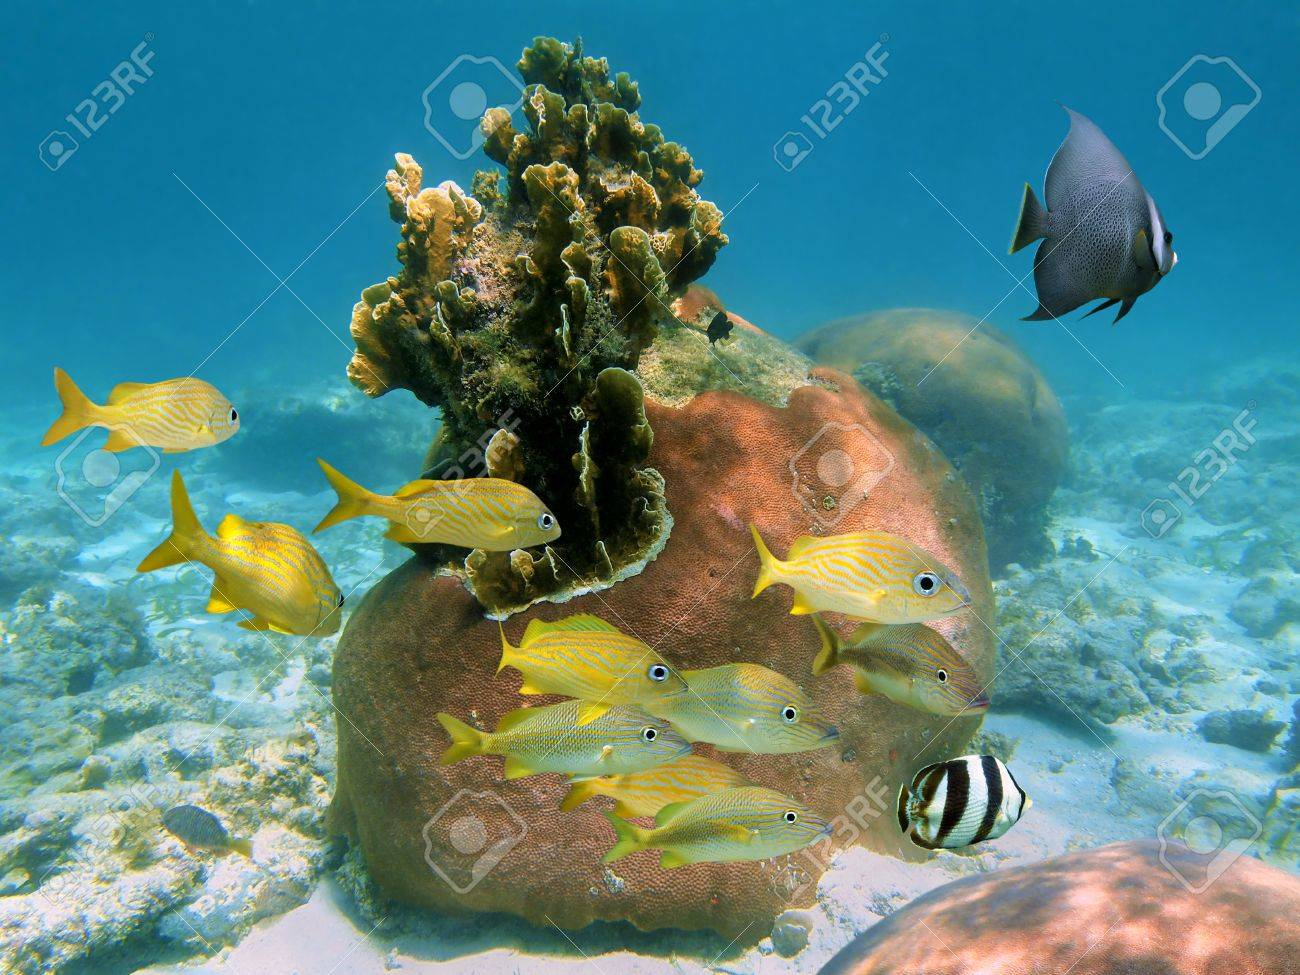 Tropical Reef Scuba Diving Scuba Diving on a Reef With a